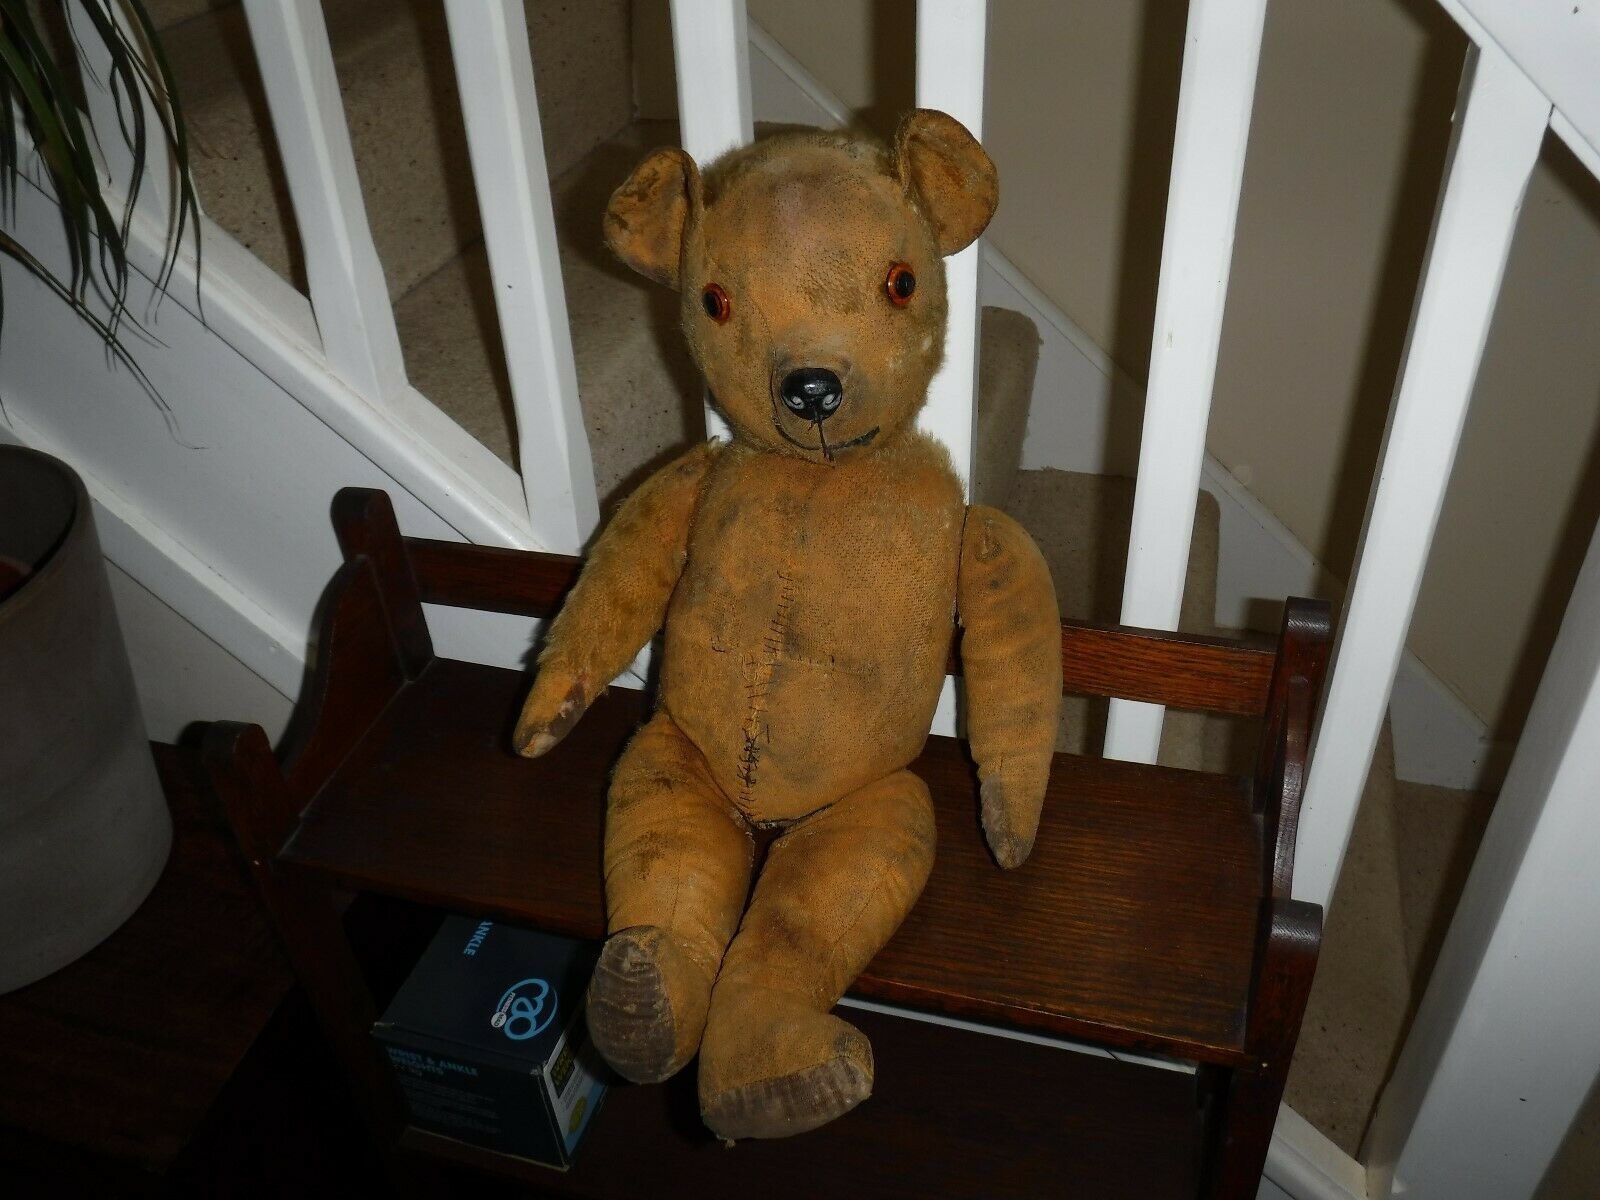 ANTIQUE OLD TEDDY IN NEED OF TLC. APPROX 20 INCHES TALL. HUMP BACK